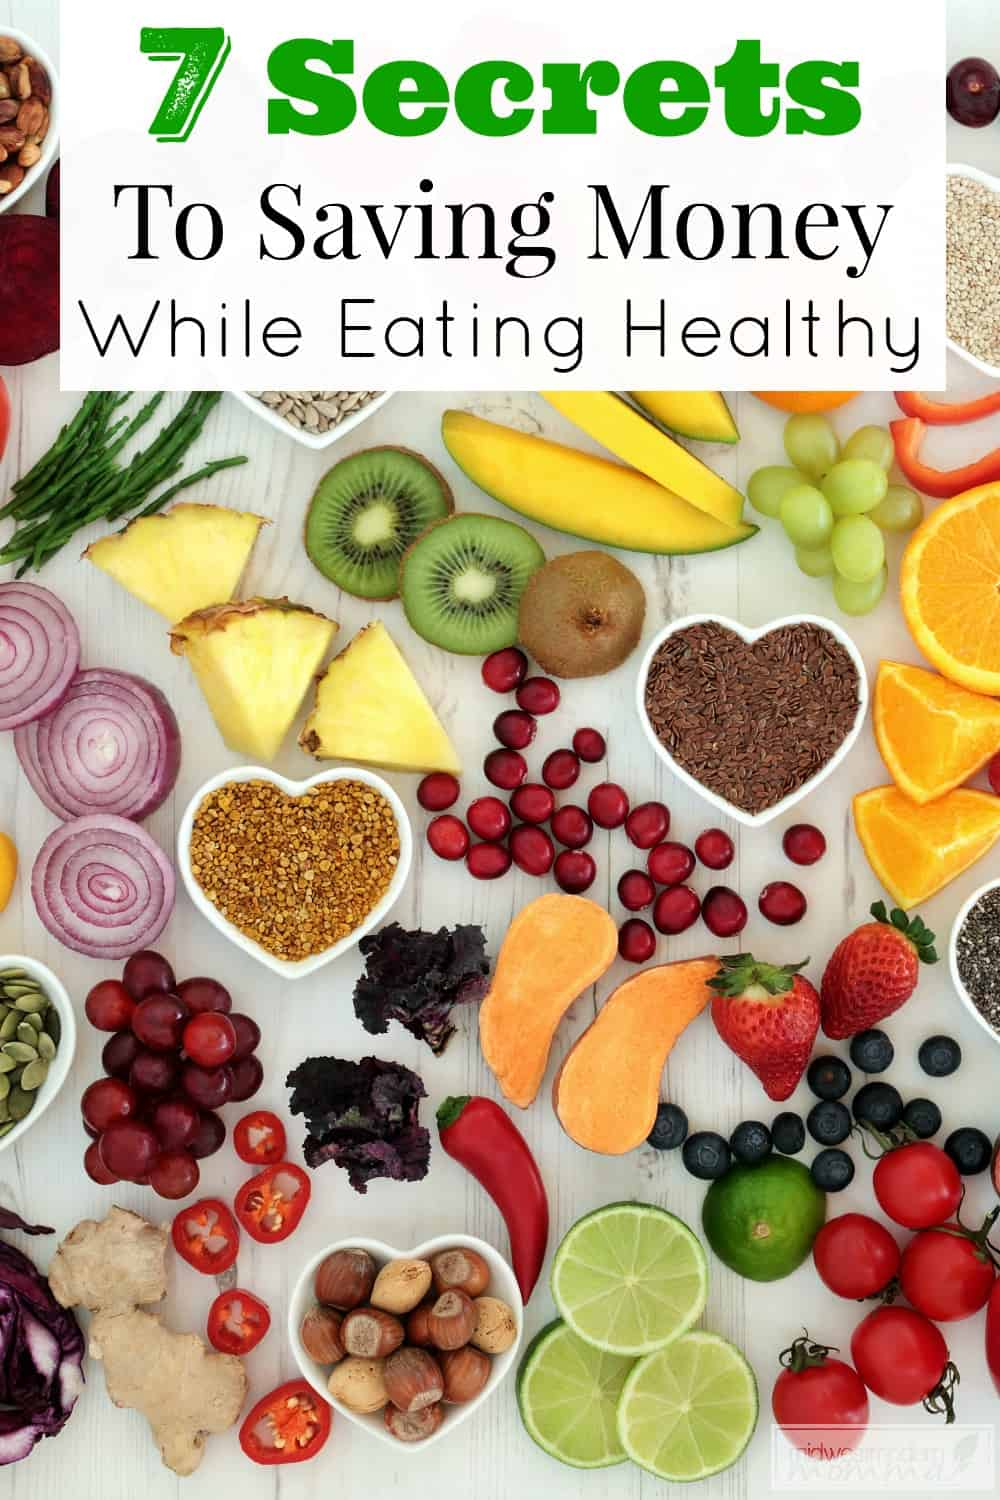 7 Secrets To Saving Money While Eating Healthy